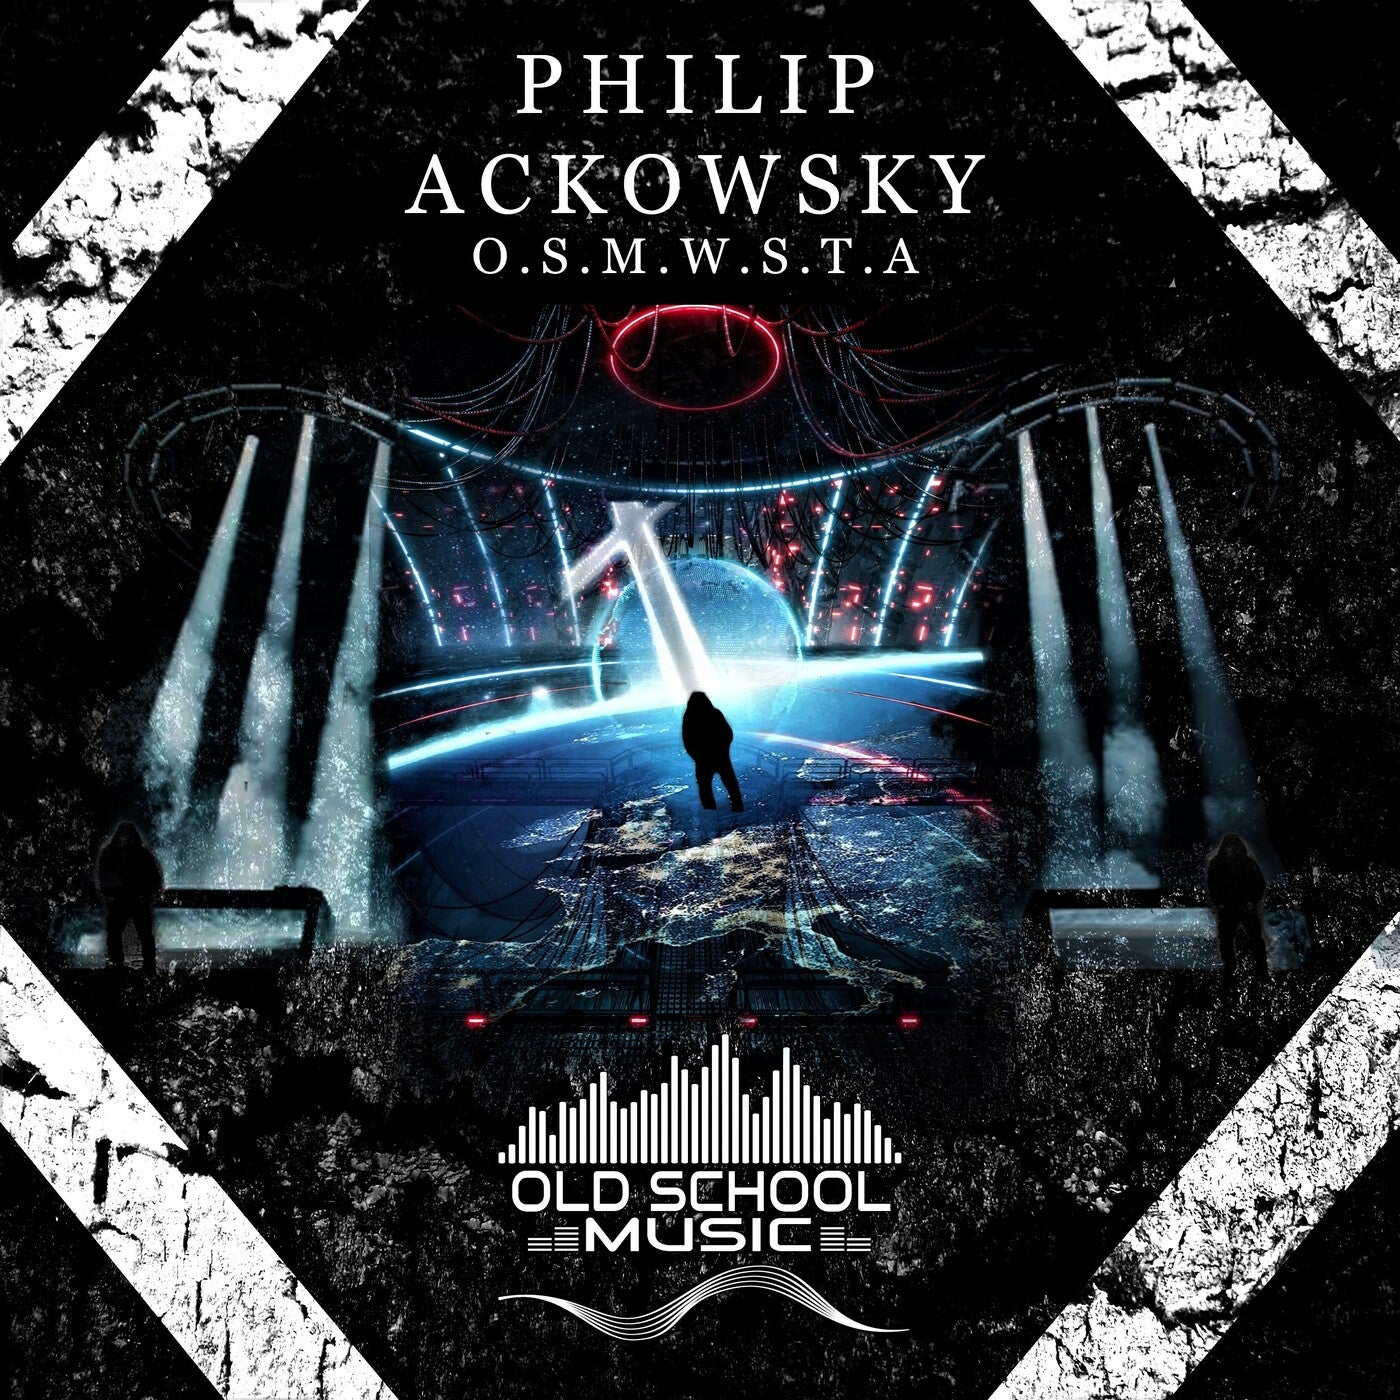 Philip Ackowsky - O.S.M.W.S.T.A (2021)